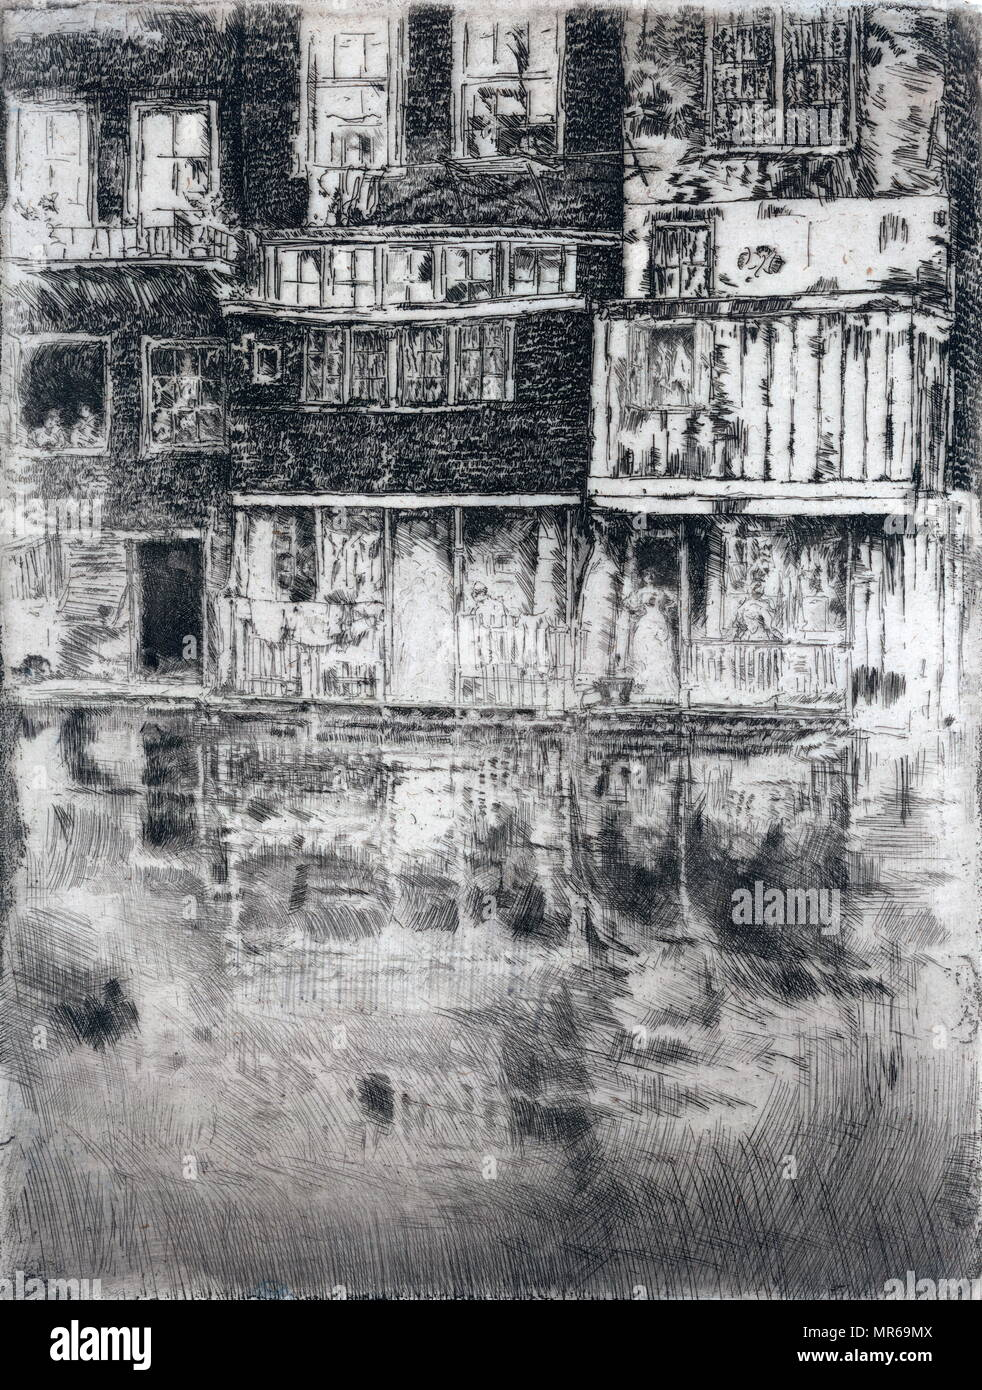 Square house, Amsterdam by James McNeil Whistler 1898 - Stock Image